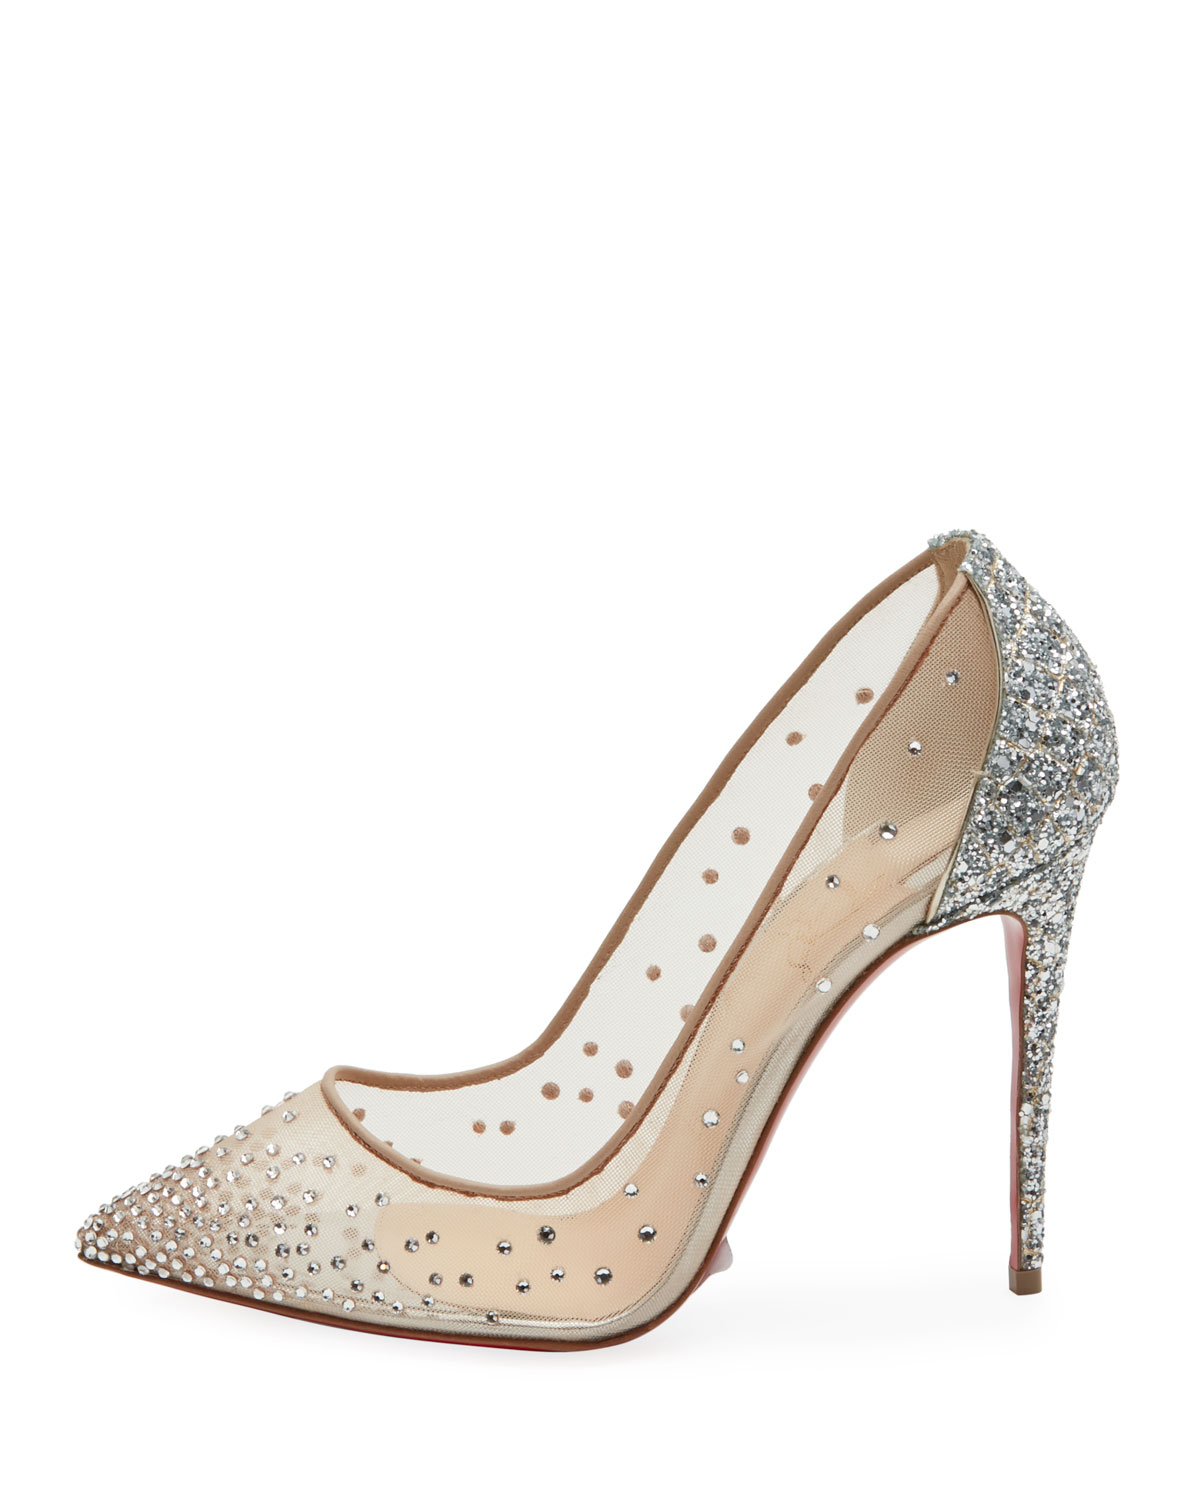 352be27ead Christian Louboutin Follies Strass Mixed Red Sole Pumps | Neiman Marcus